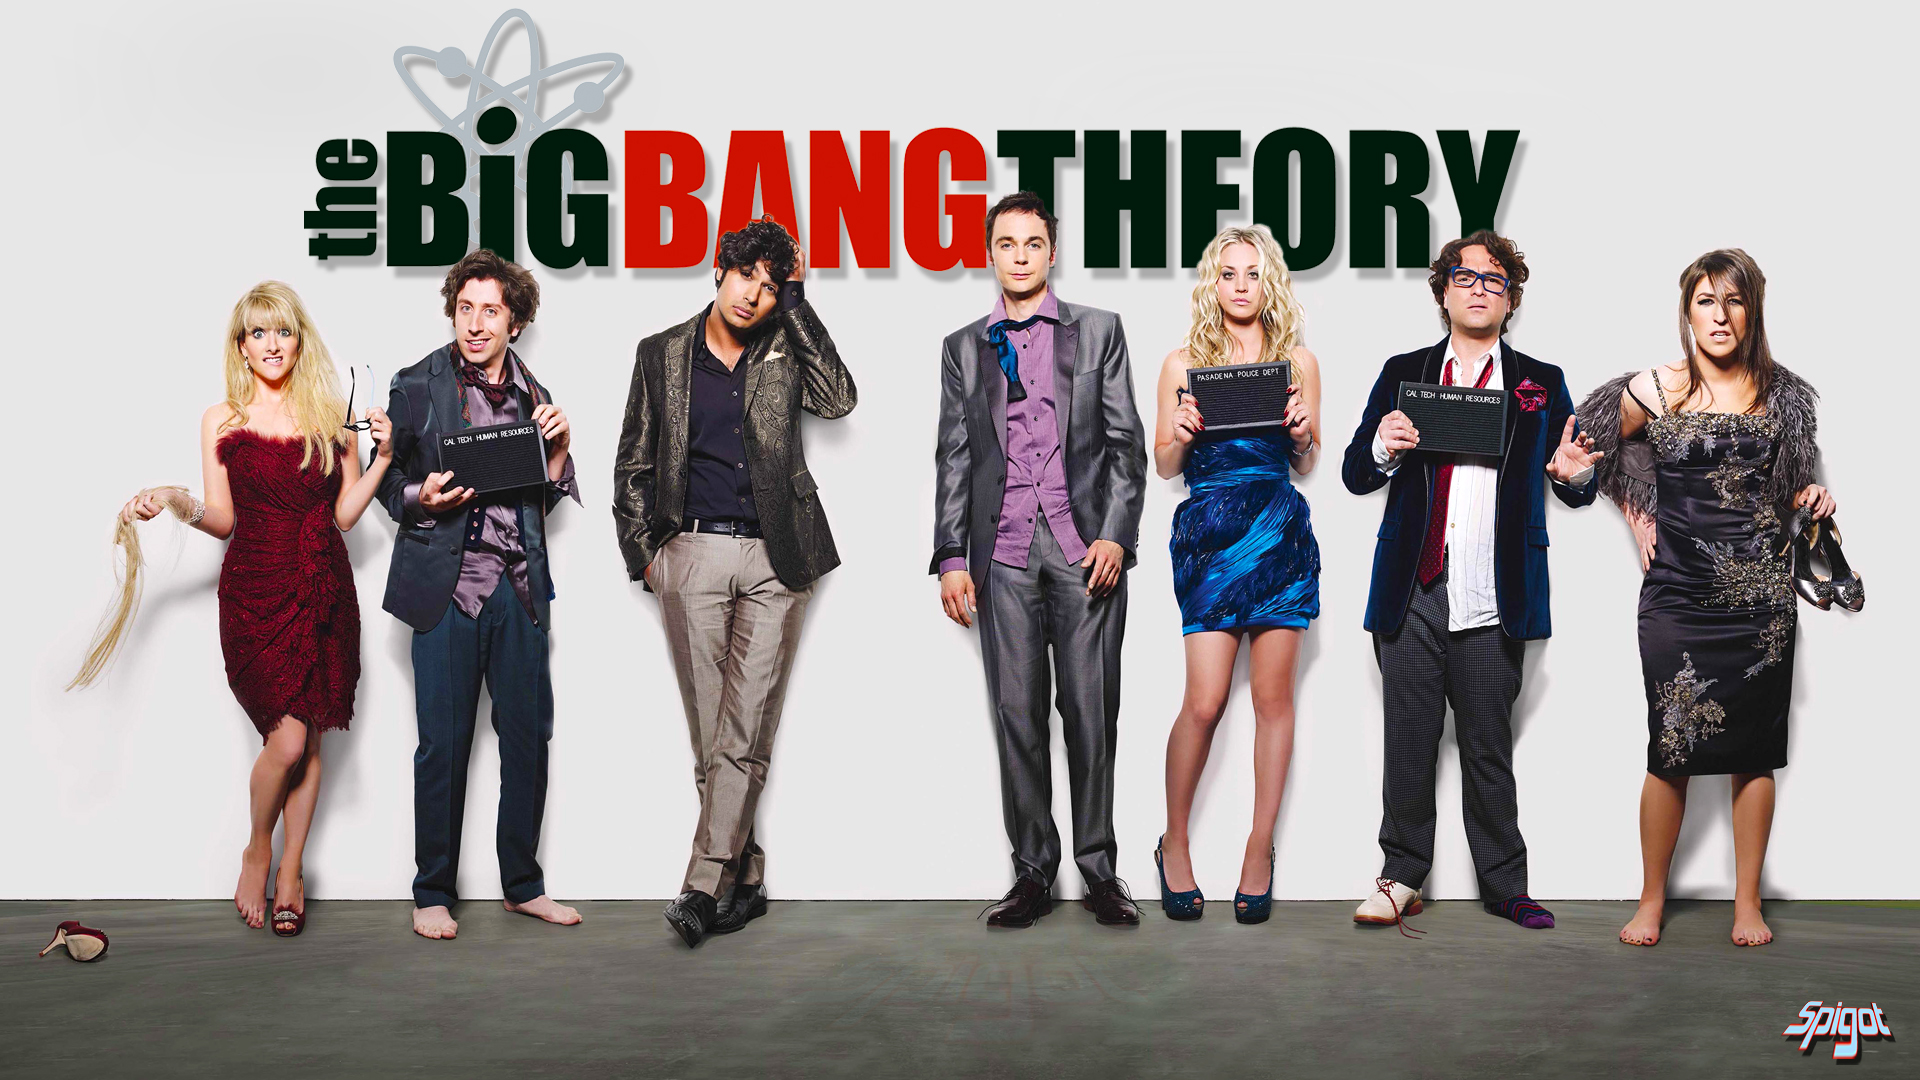 the big bang theory a prevailing Why it's a problem the universe is too big to have formed in only 10-20 billion years as the big bang theory suggests, since the big bang is theorized to have happened only about 137 billion years ago this is because the speed of matter is limited by the speed of light.